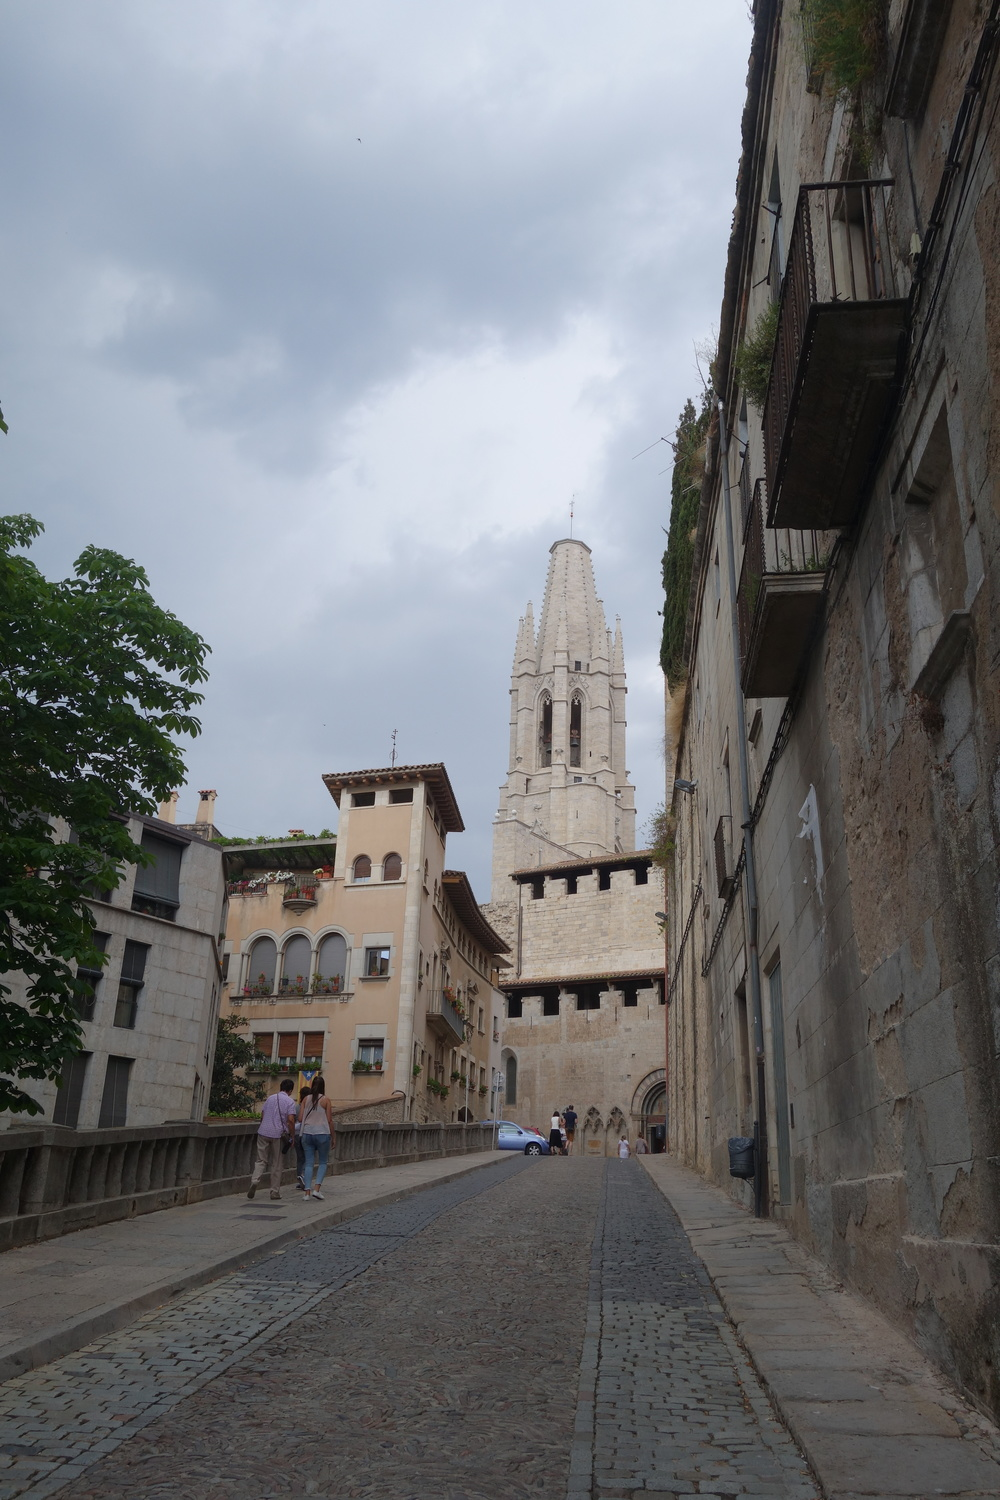 The cathedral in Girona